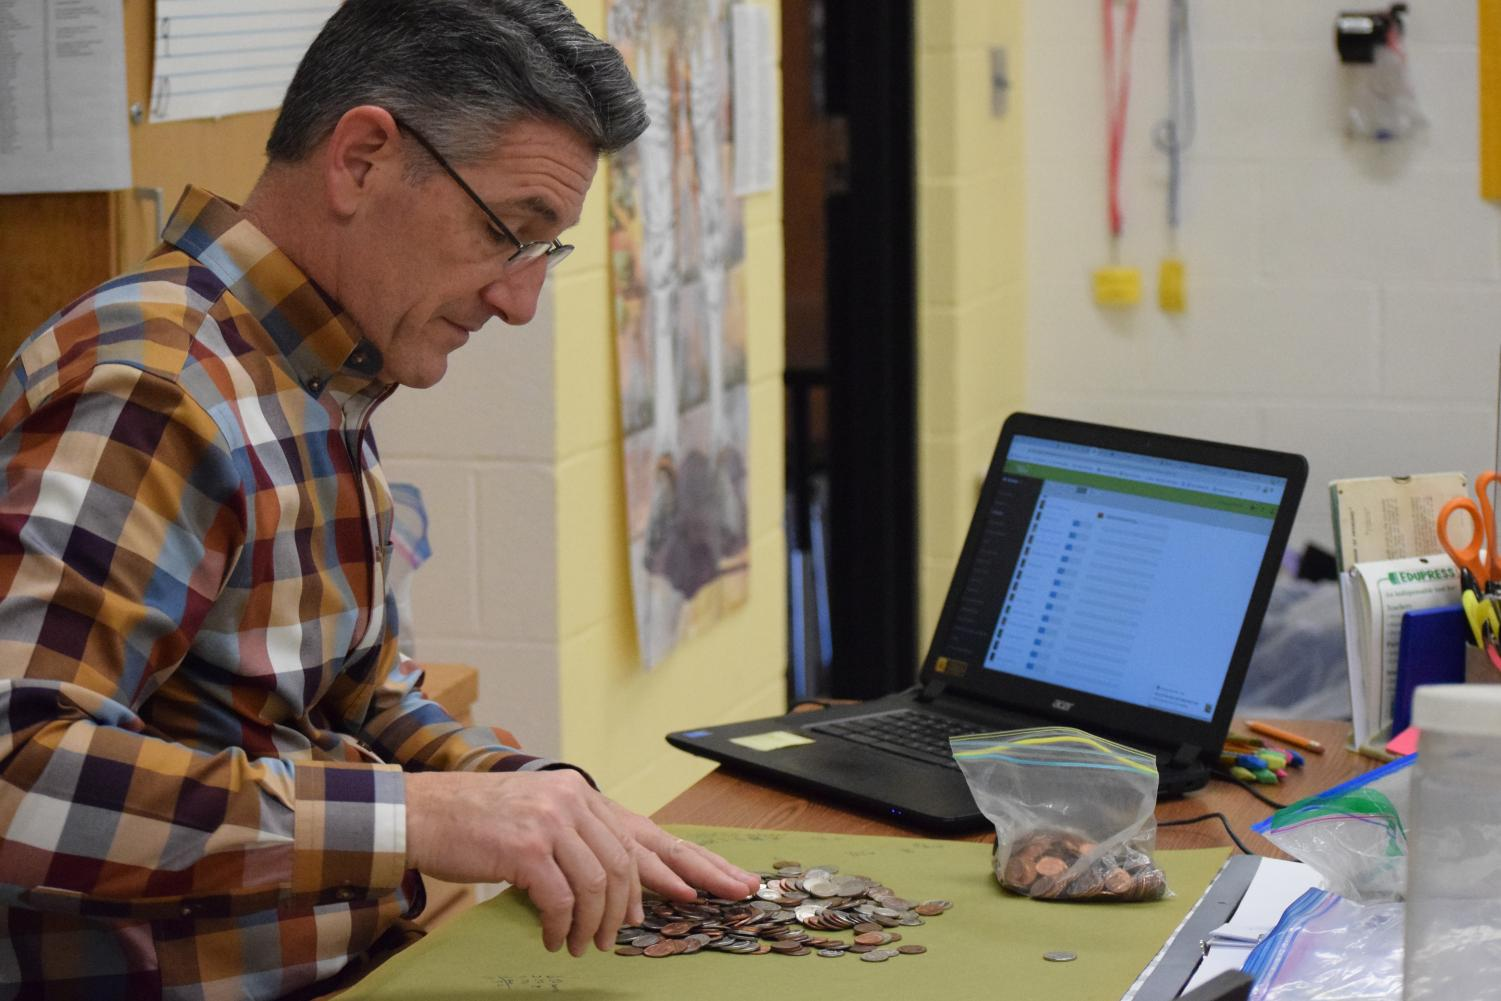 Mr. Larry Richmond counts the coins for the fundraiser.